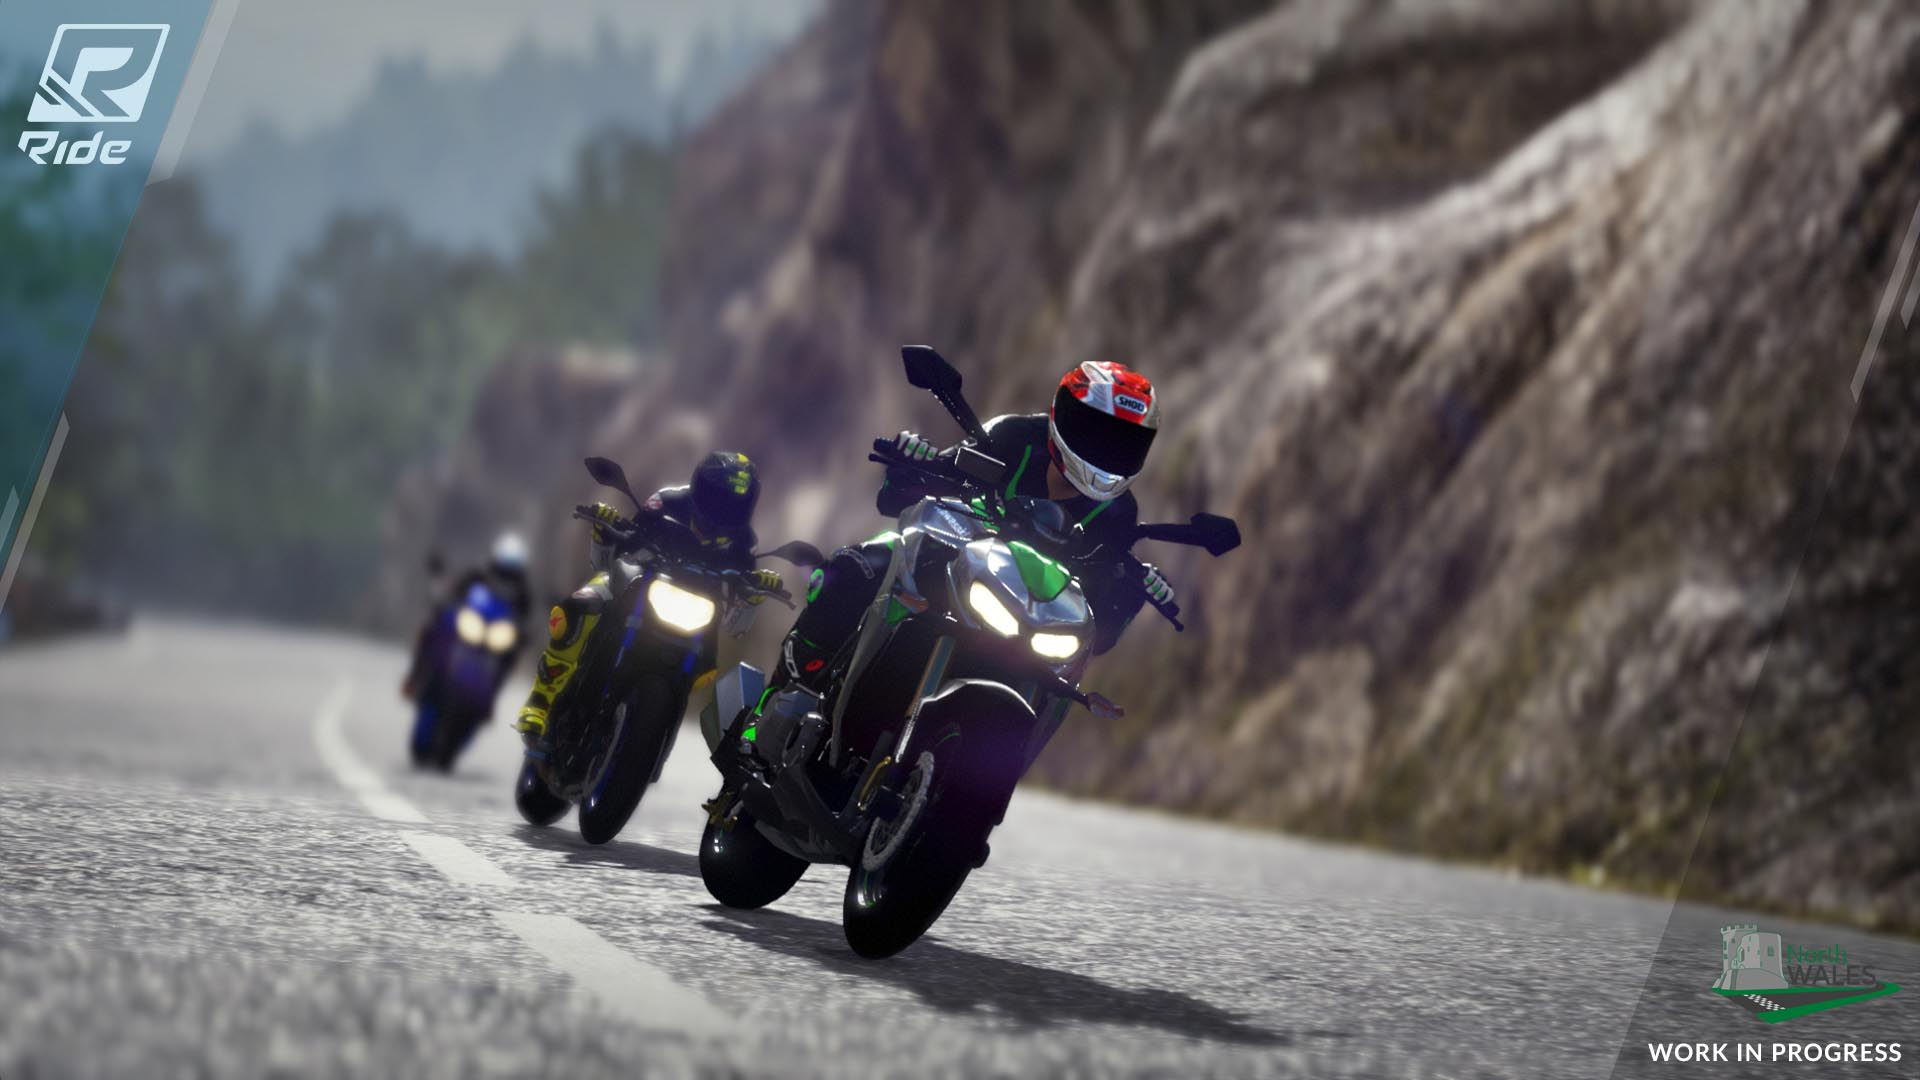 If you want to race using street bikes, or more customization, this is the one for you. The handling and gameplay is more forgiving compared to <i>MotoGP</i>, and rather than following the career of a current MotoGP rider, you create your avatar from scratch and your bike is completely customizable. | <b>For:</b> PC, PS4, Xbox One, PS3, Xbox 360